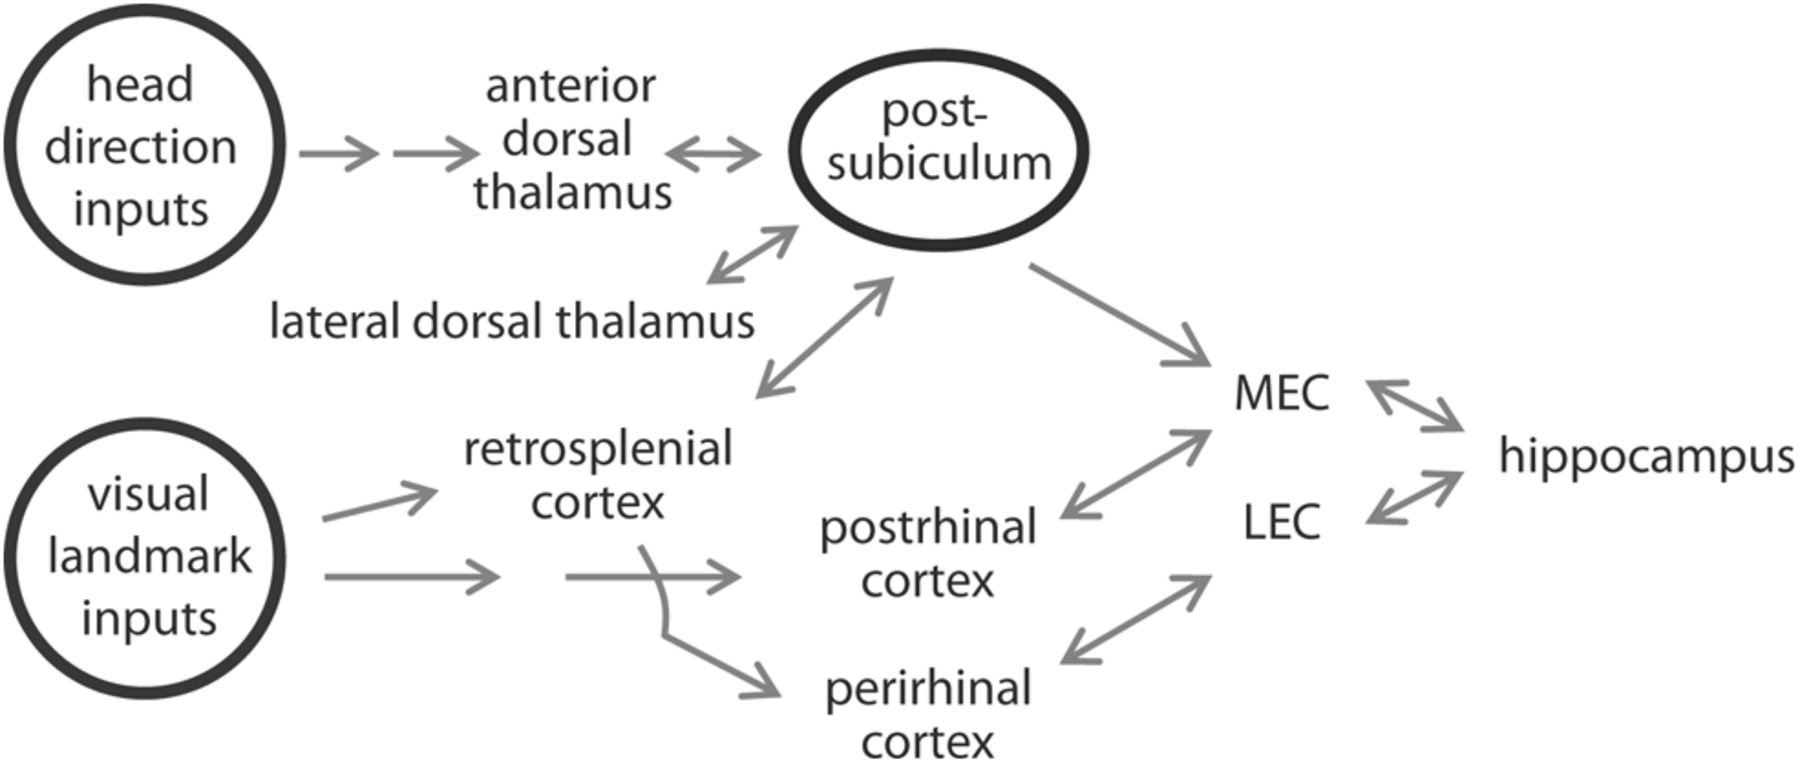 The Postsubiculum And Spatial Learning Role Of Postsubicular Wiring Diagram For Steven Ma Download Figure